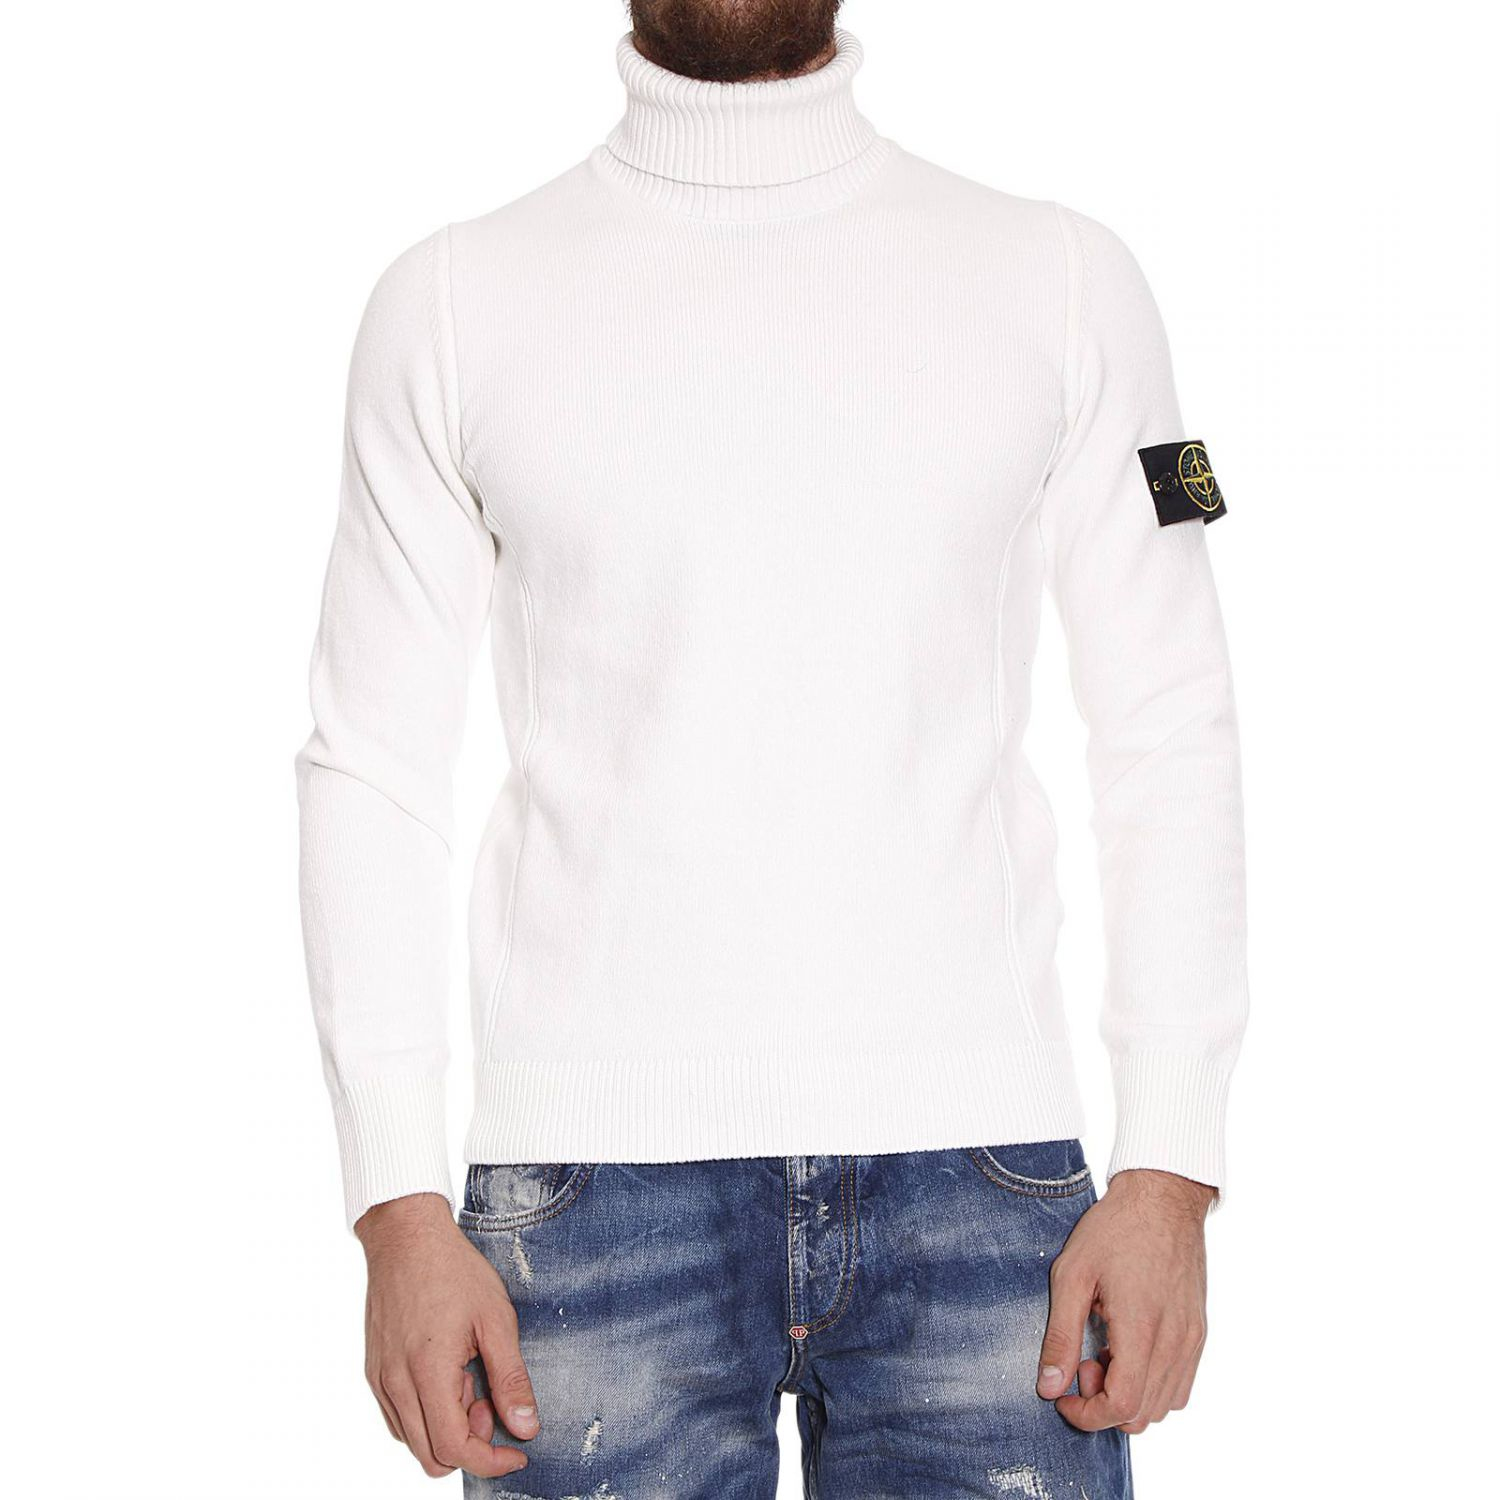 Stone island Sweater Winter Cotton Turtleneck in White for Men | Lyst